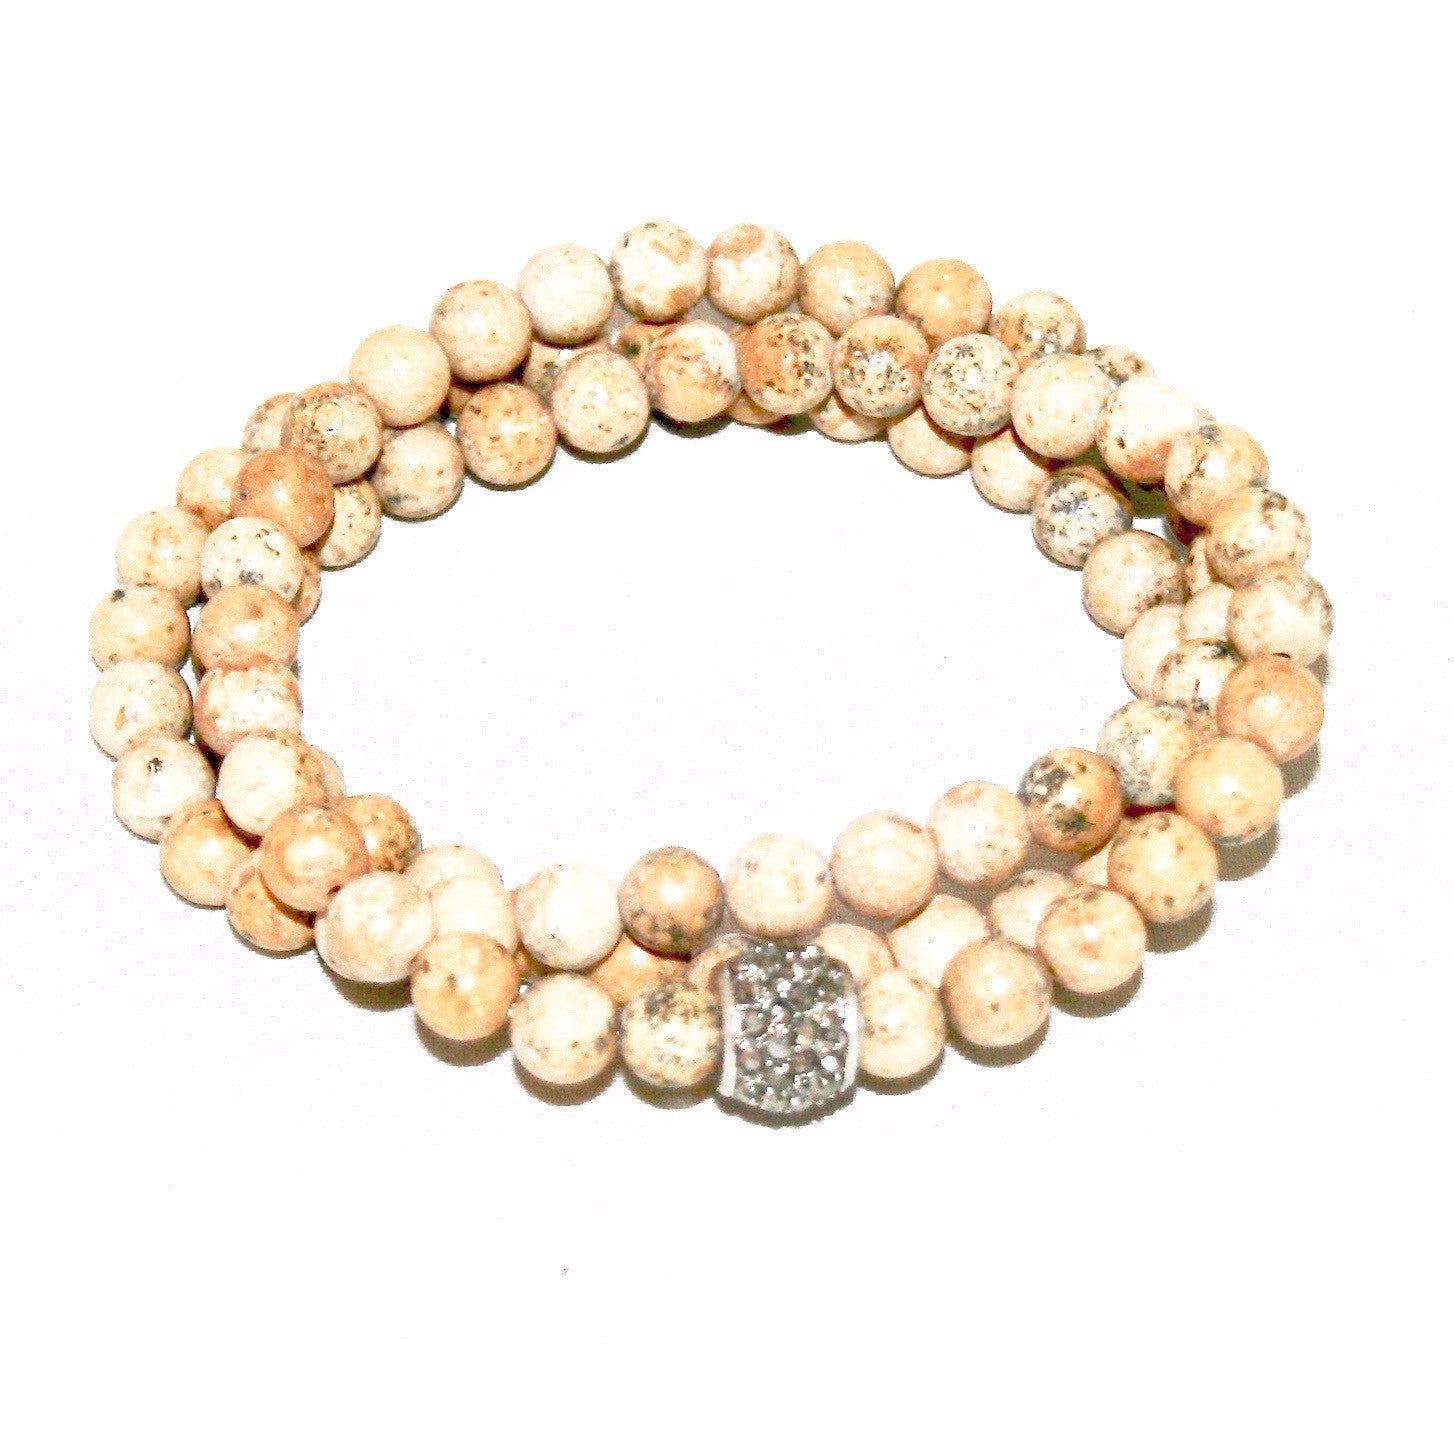 the triple bracelet met bar in gold bracel metallic wrap schwartz sobe liza